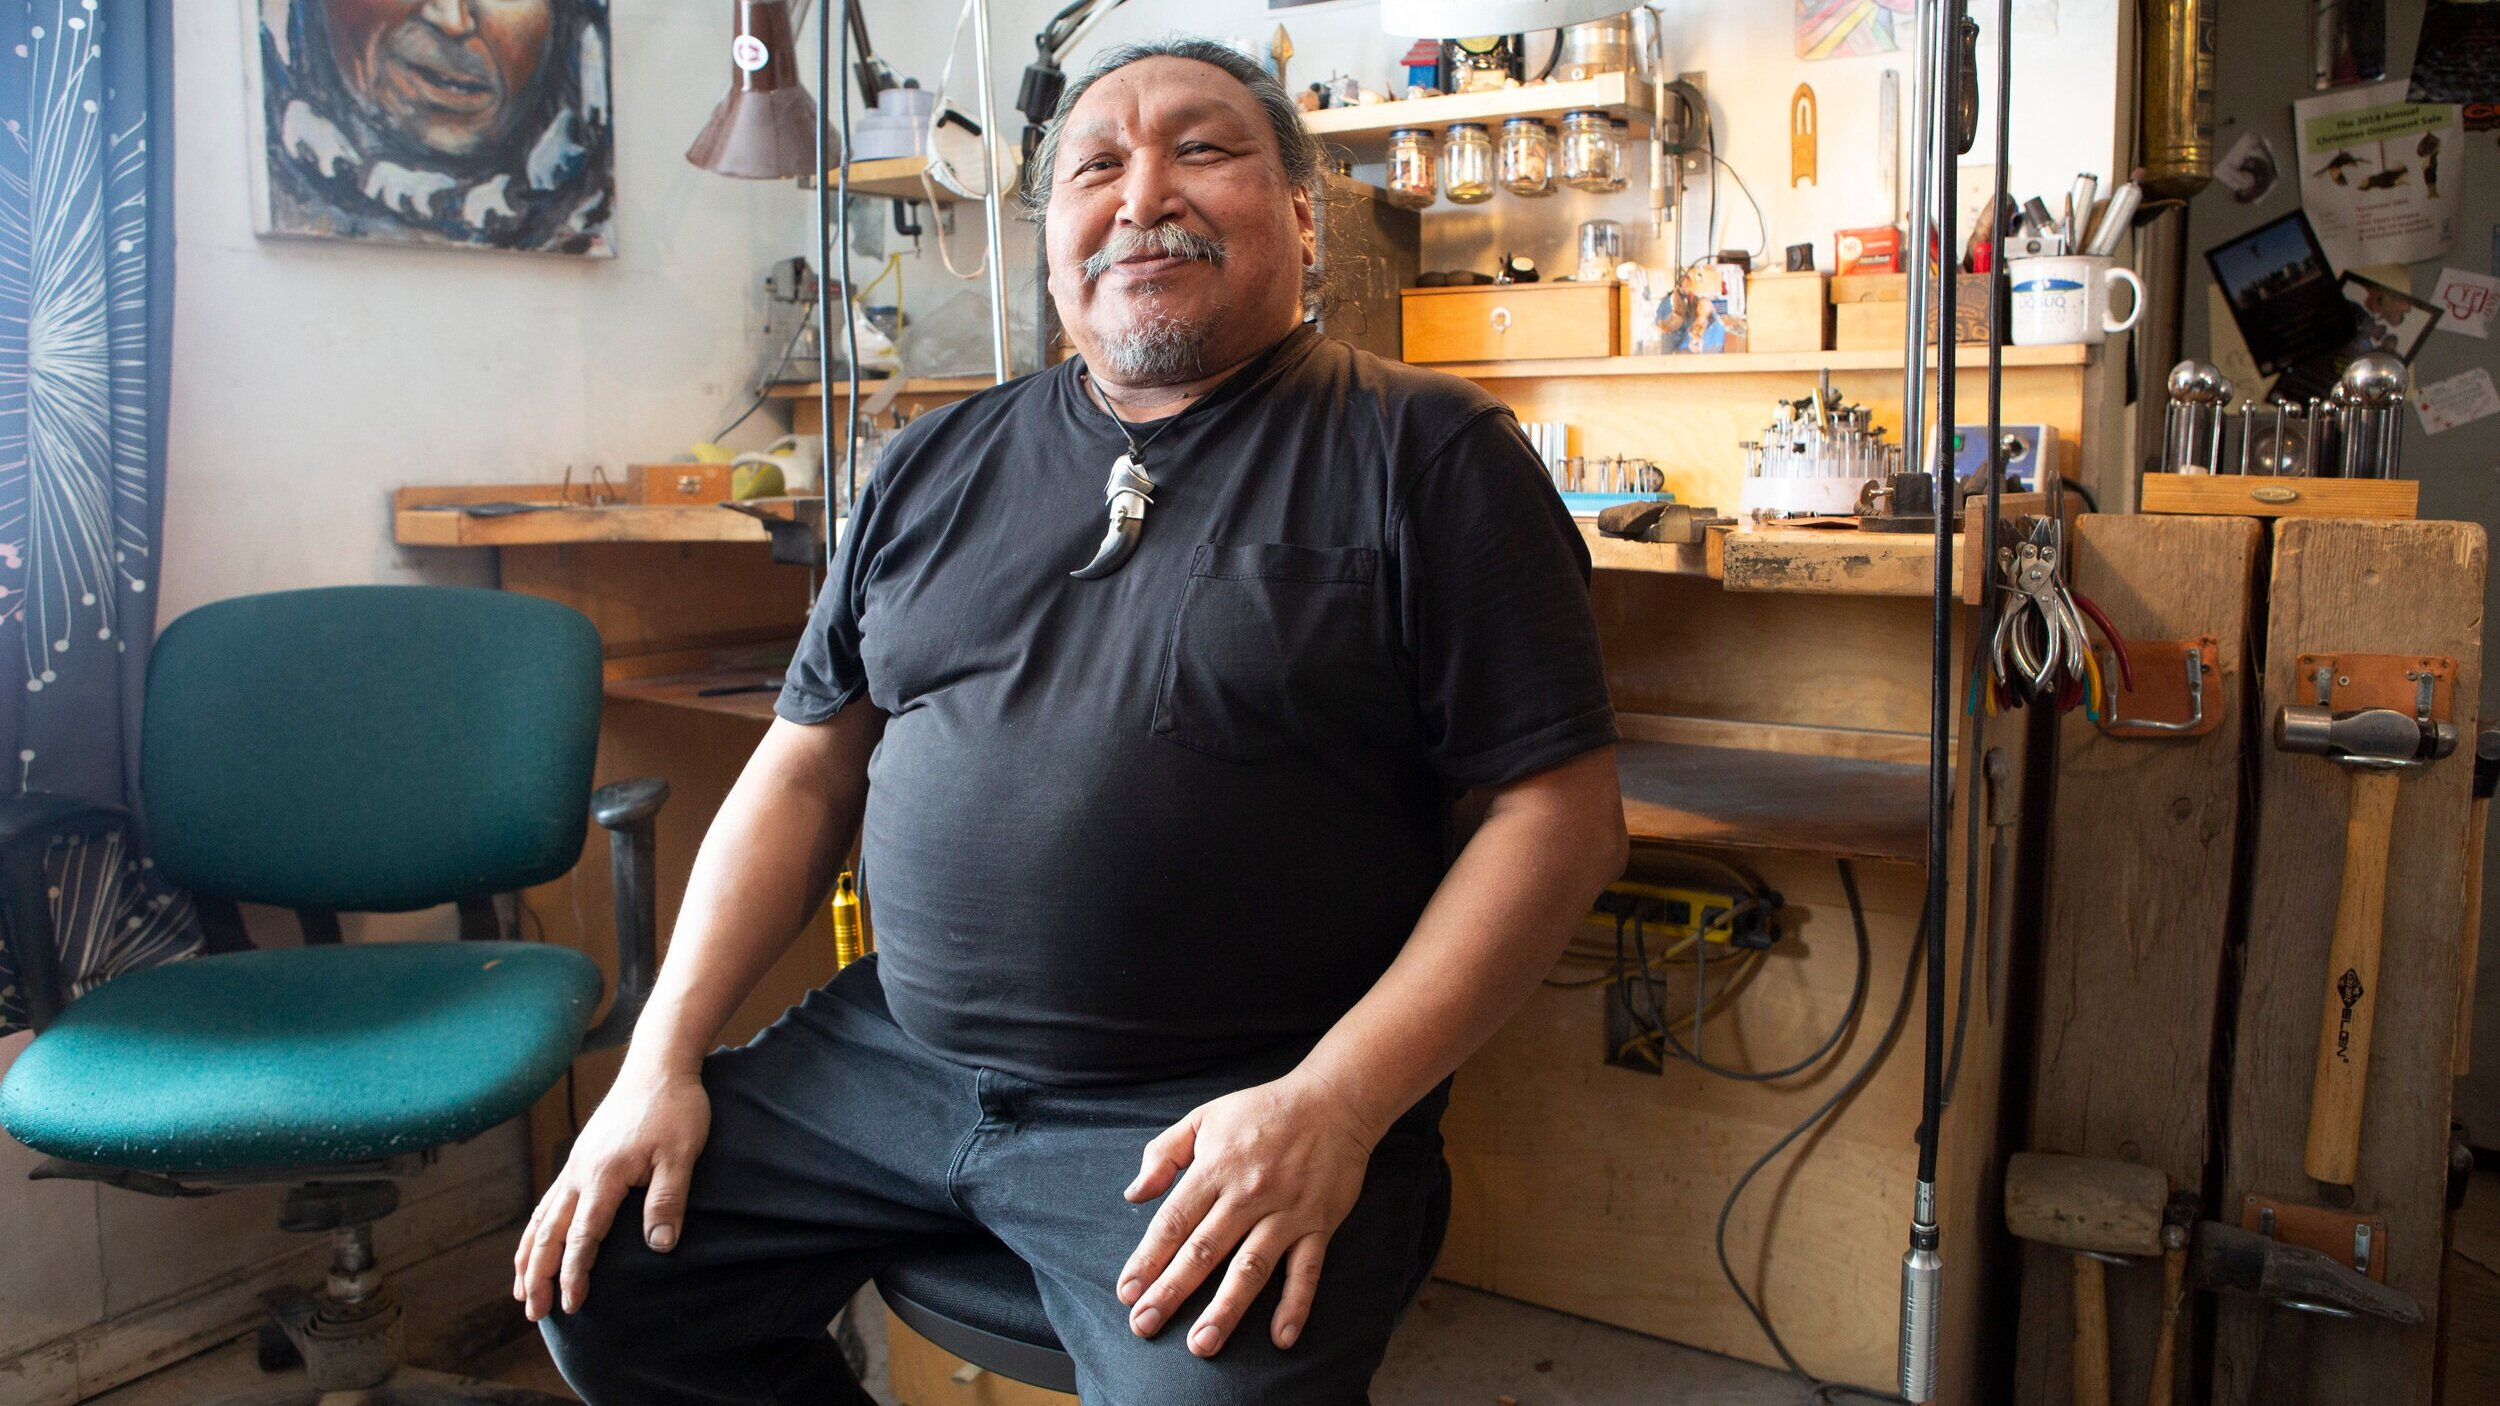 Meet Mathew Nuqingaq, Inuit Jeweler to Royals, Rock Stars, and Paris Fashion Week - Mathew Nuqingaq, a jeweler and artist in Canada's Arctic, shows The Daily Beast inside his unique studio. 'You can say so much with very little,' he says.